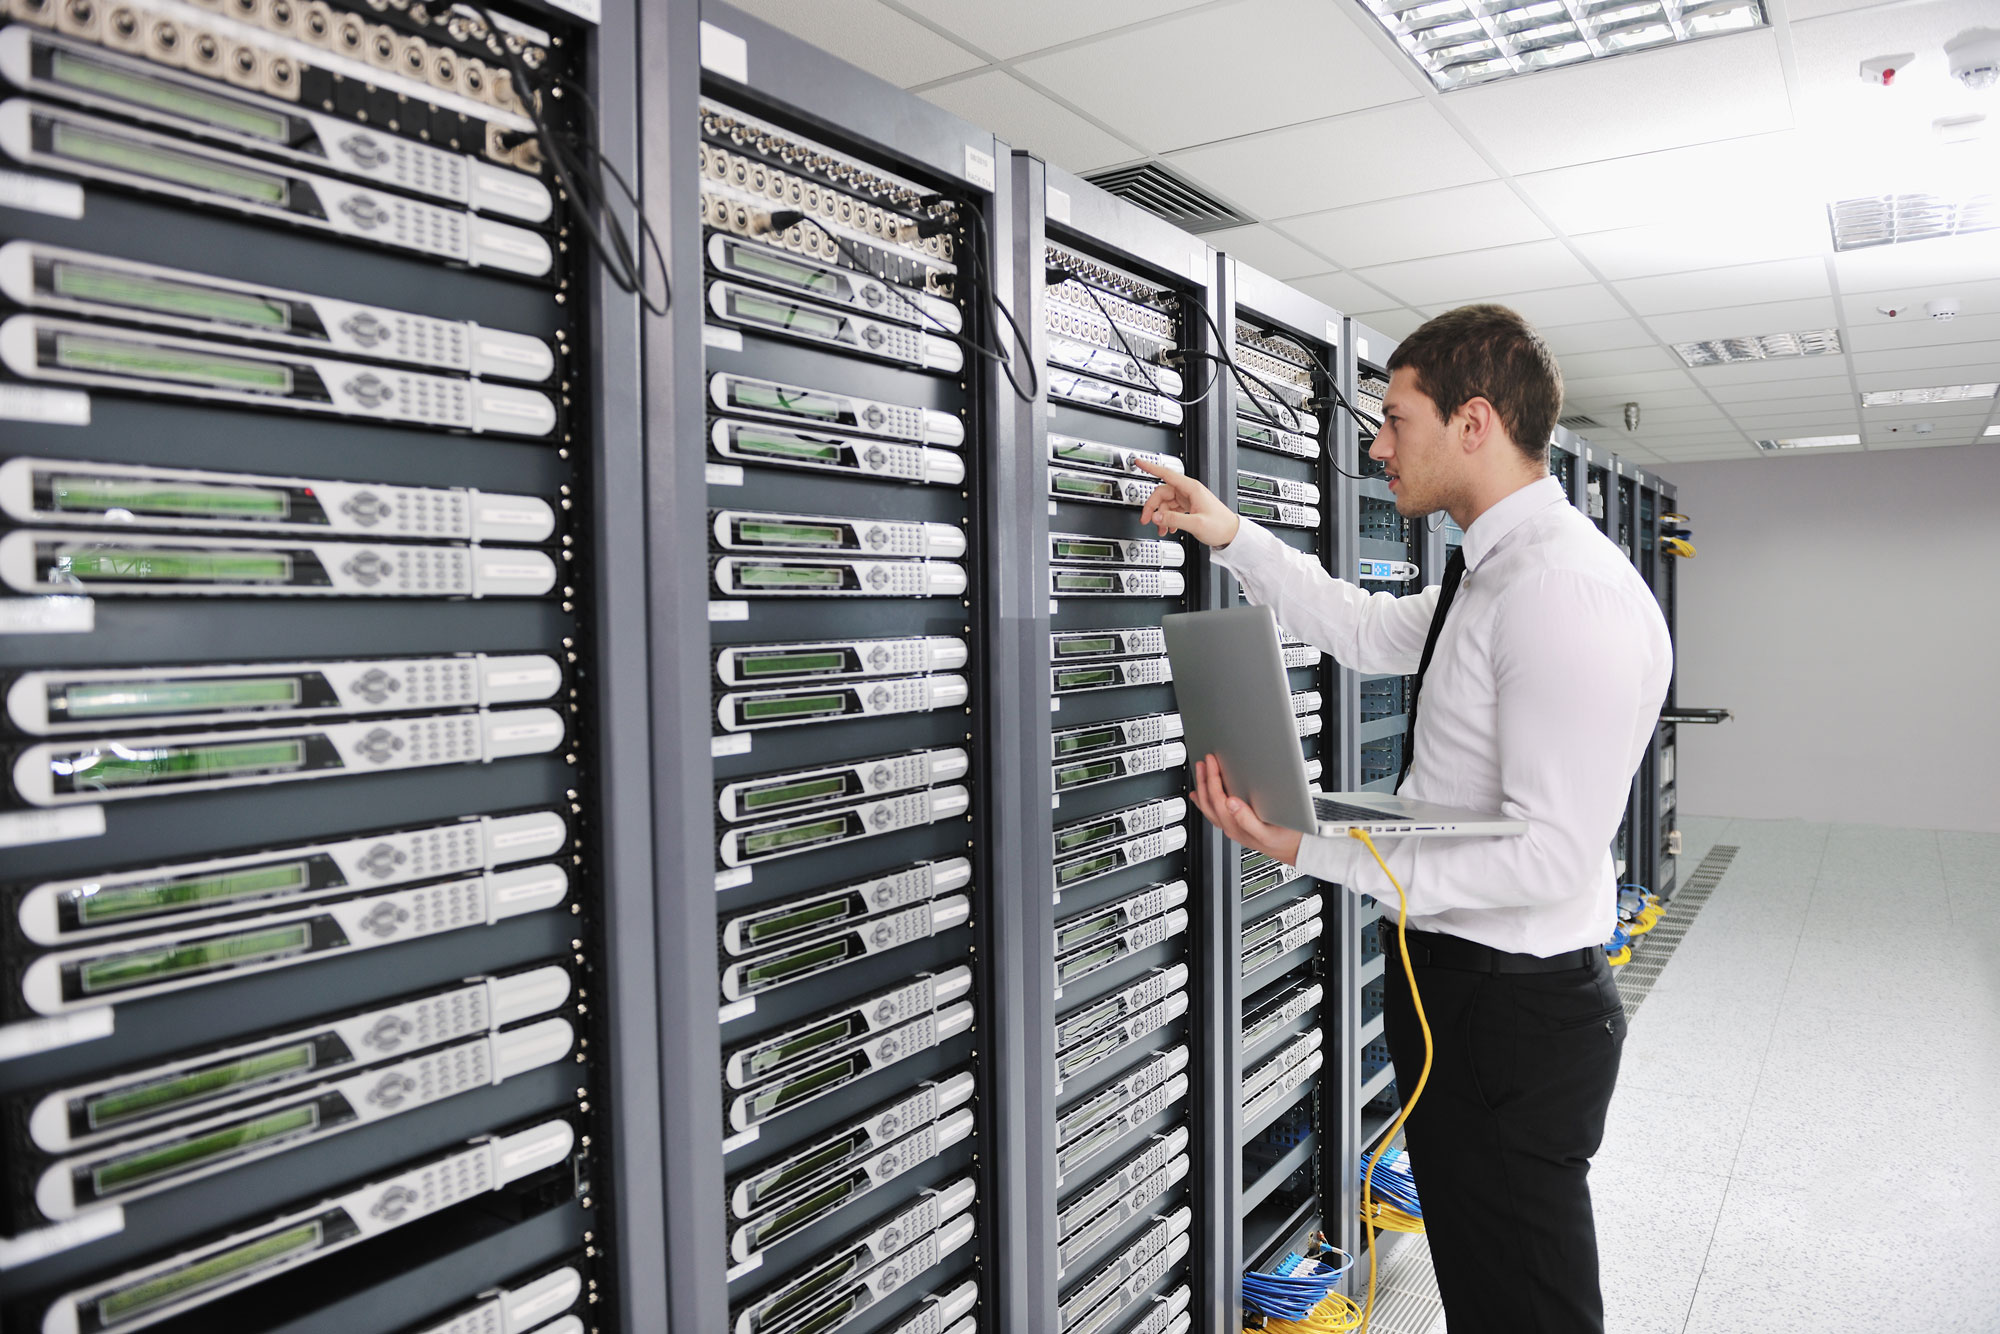 Hiring The Right IT Professionals